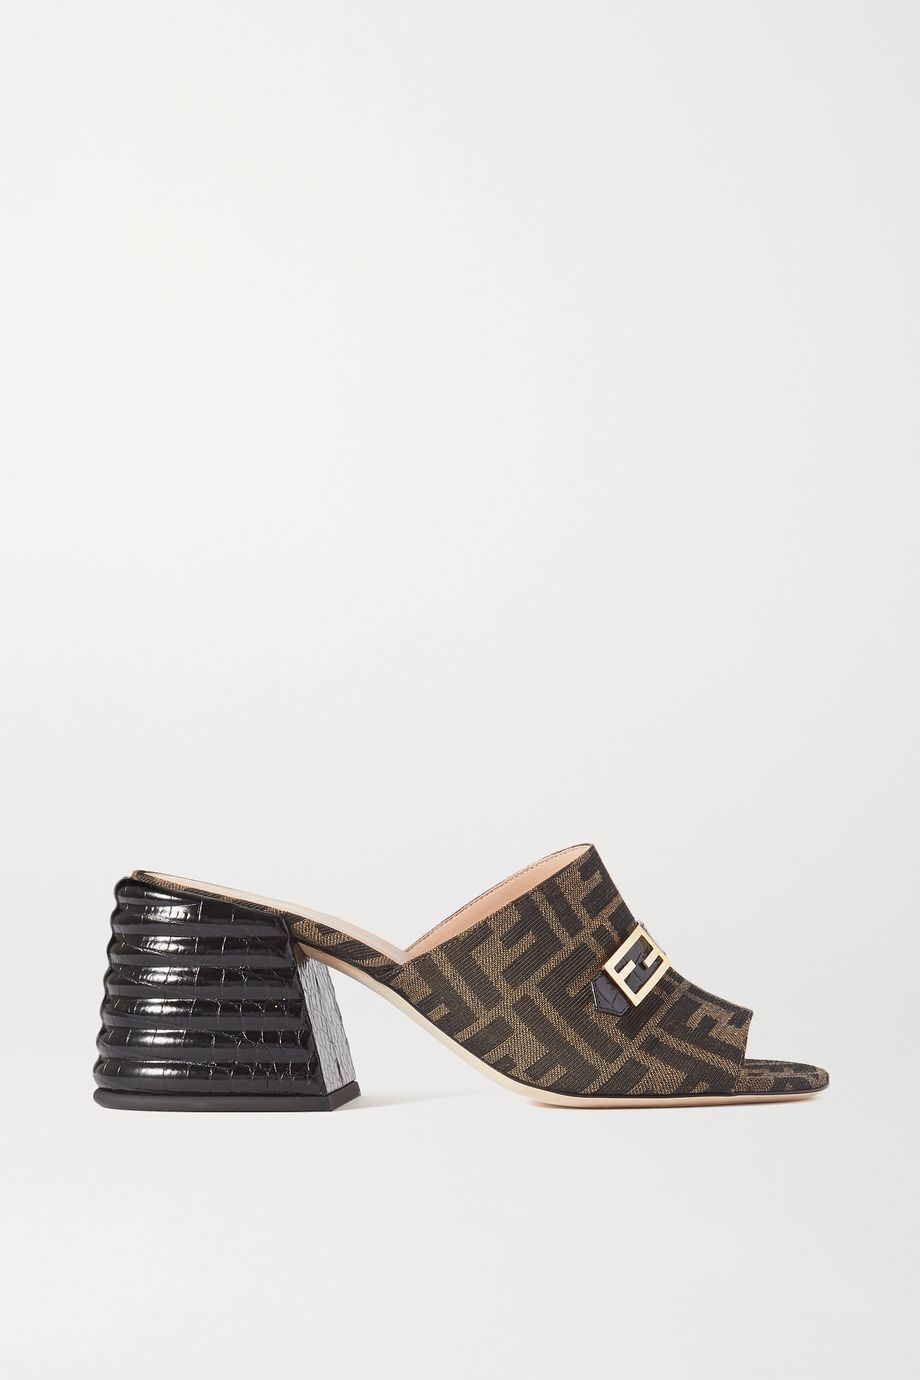 Fendi Promenade croc-effect leather and canvas mules